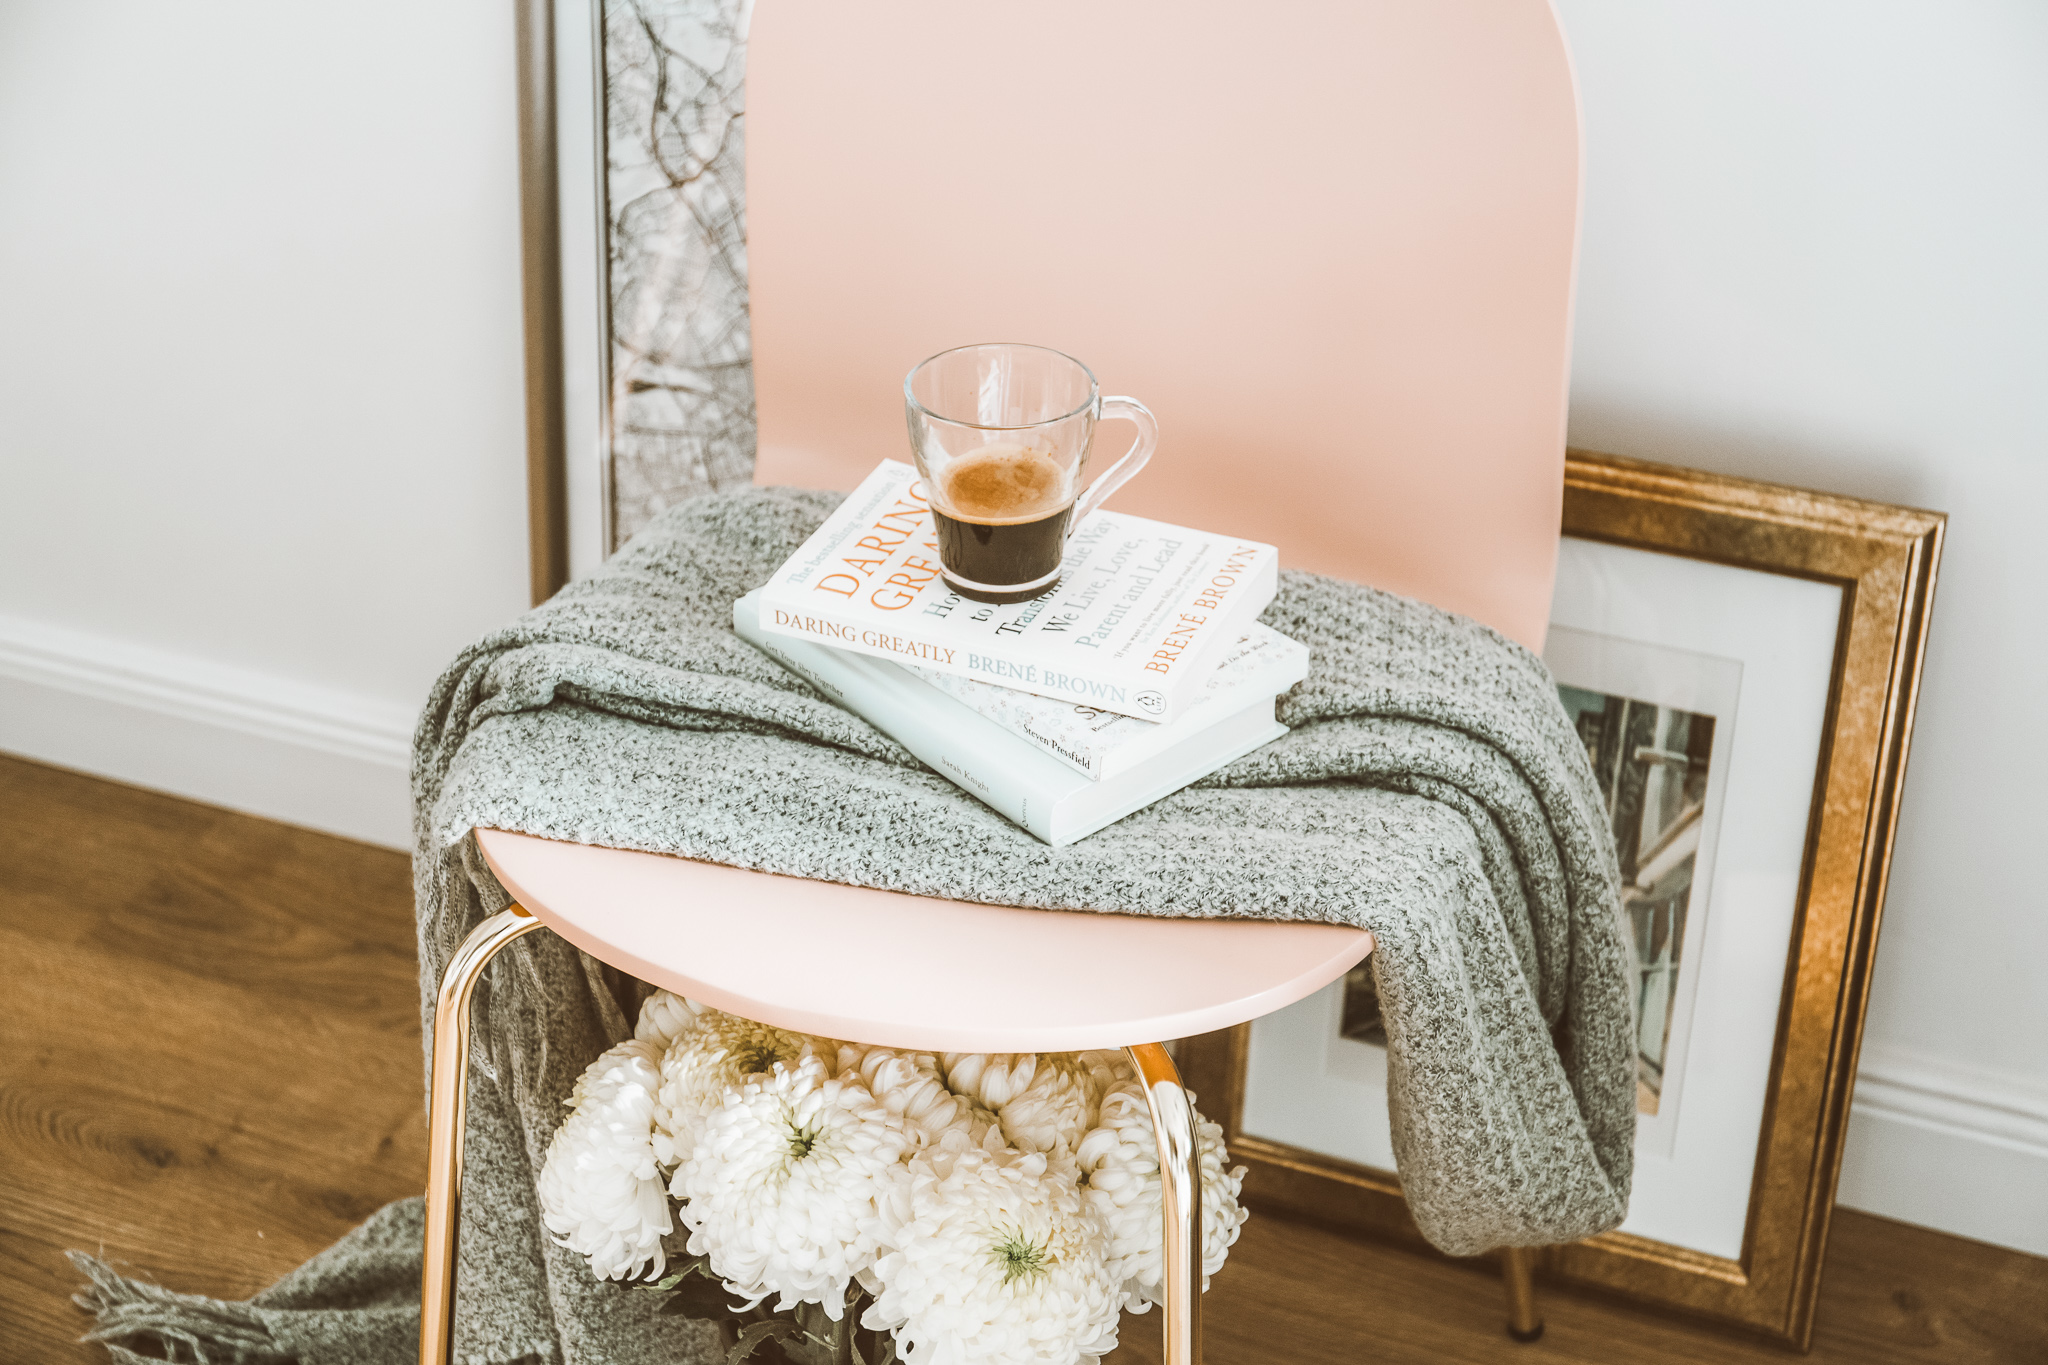 Coffee, books, blankets, flowers tossed on a chair in living room.